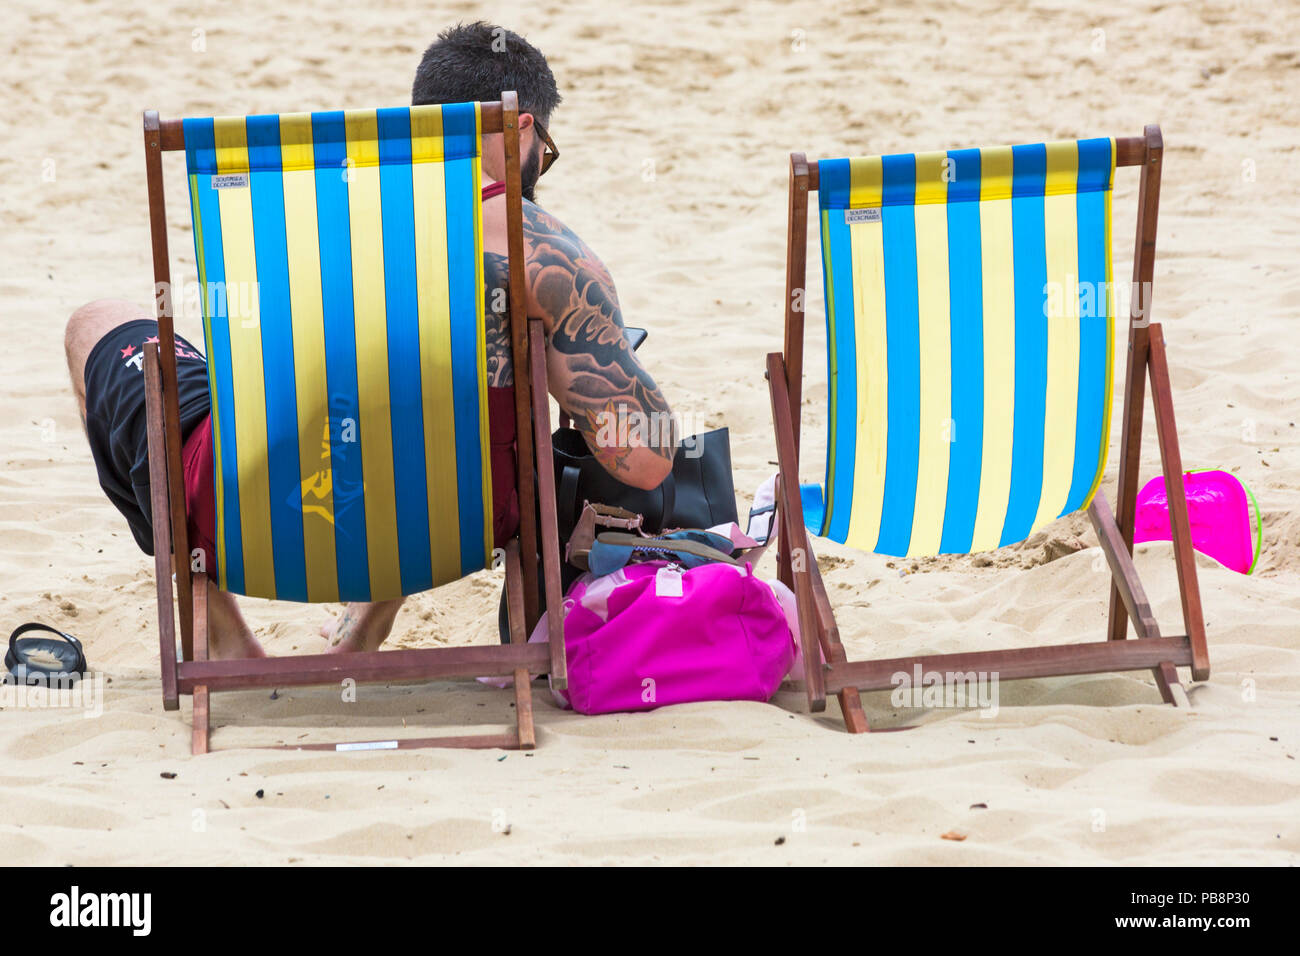 Bournemouth, Dorset, UK. 27th July 2018. UK weather: Sunseekers head to the seaside to soak up the sun at Bournemouth beaches on a warm humid day with some cloud cover. Man with tattoos sitting in deckchair. Credit: Carolyn Jenkins/Alamy Live News - Stock Image